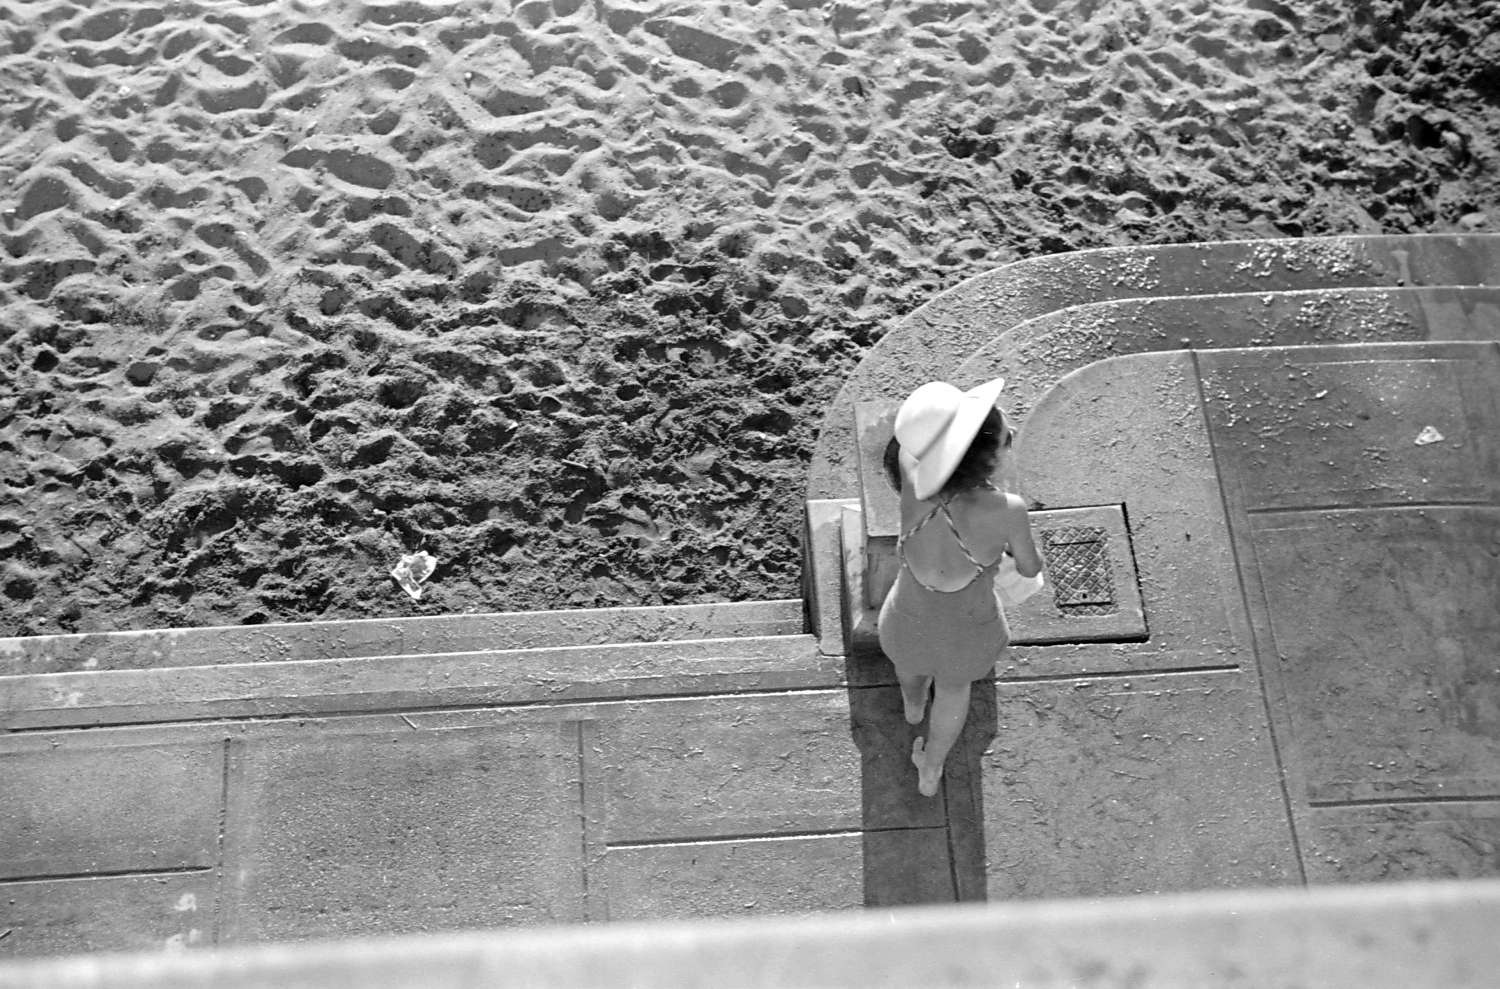 Woman at drinking fountain at the beach, 1937. Reference code AM640-: CVA 260-670.